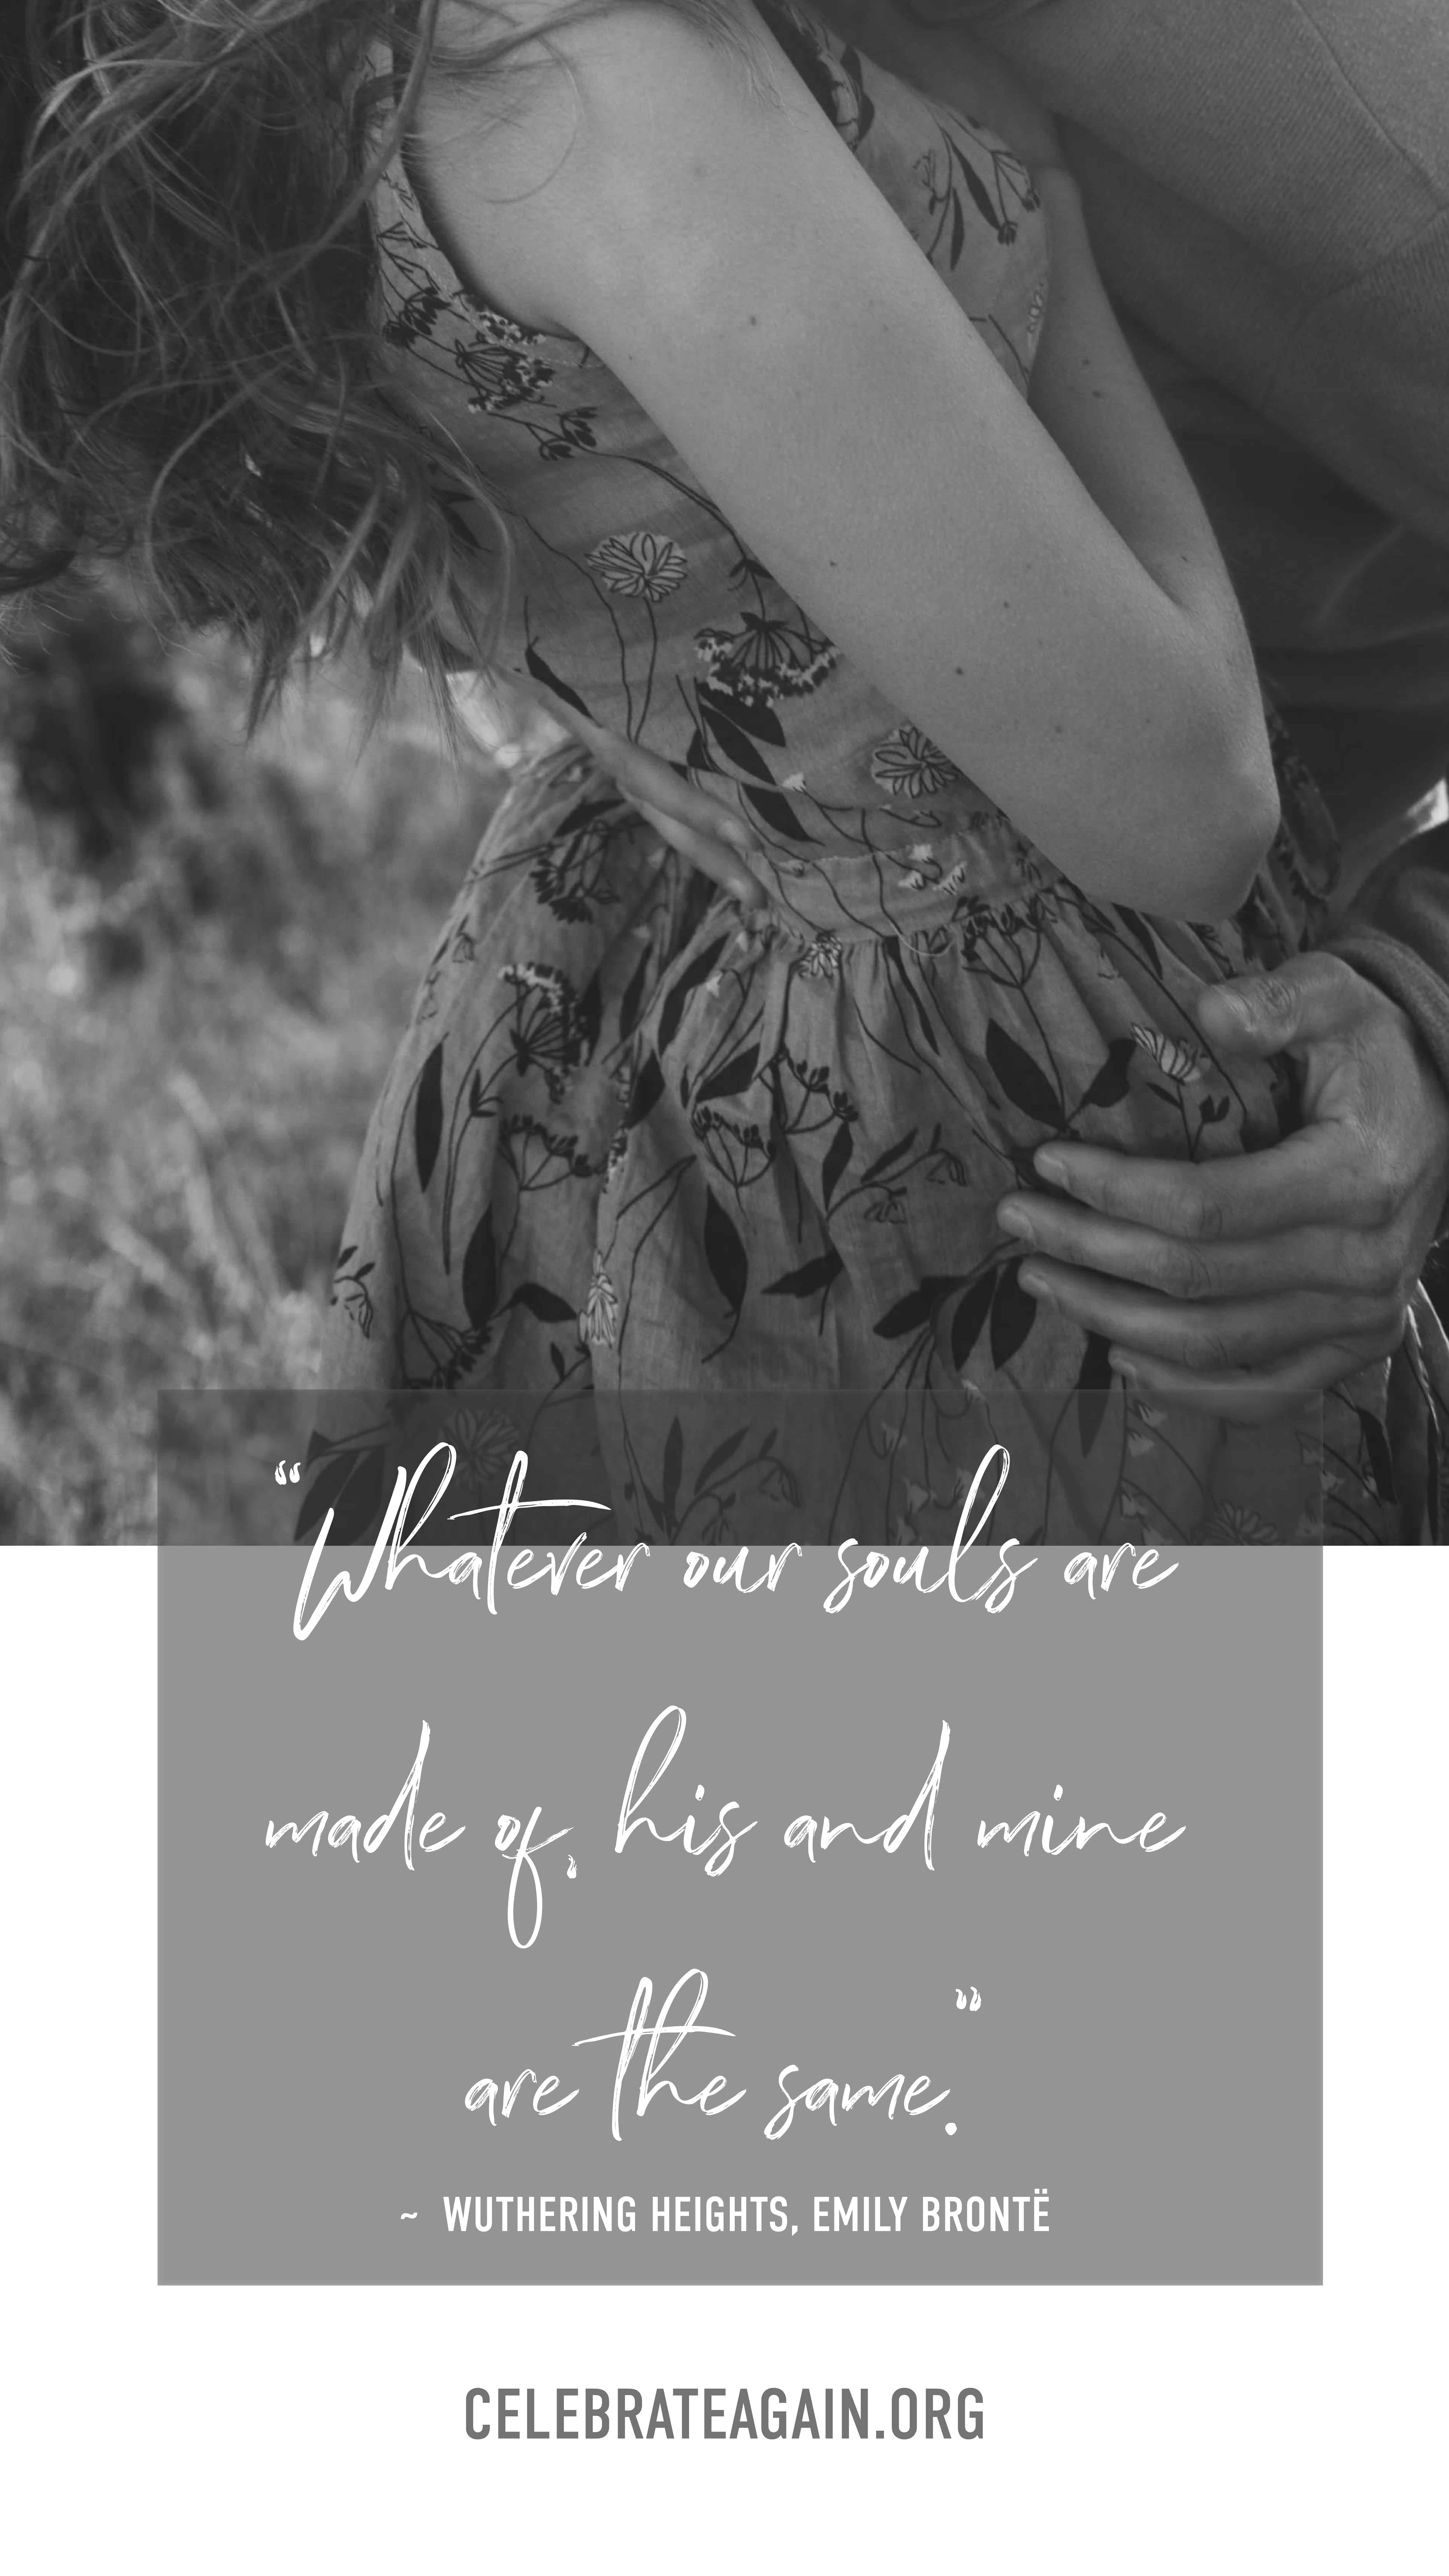 """romantic love quote """"Whatever our souls are made of, his and mine are the same."""" - Wuthering Heights by Emily Brontë, male hand on female hip as she leans back image by celebrateagain.org"""